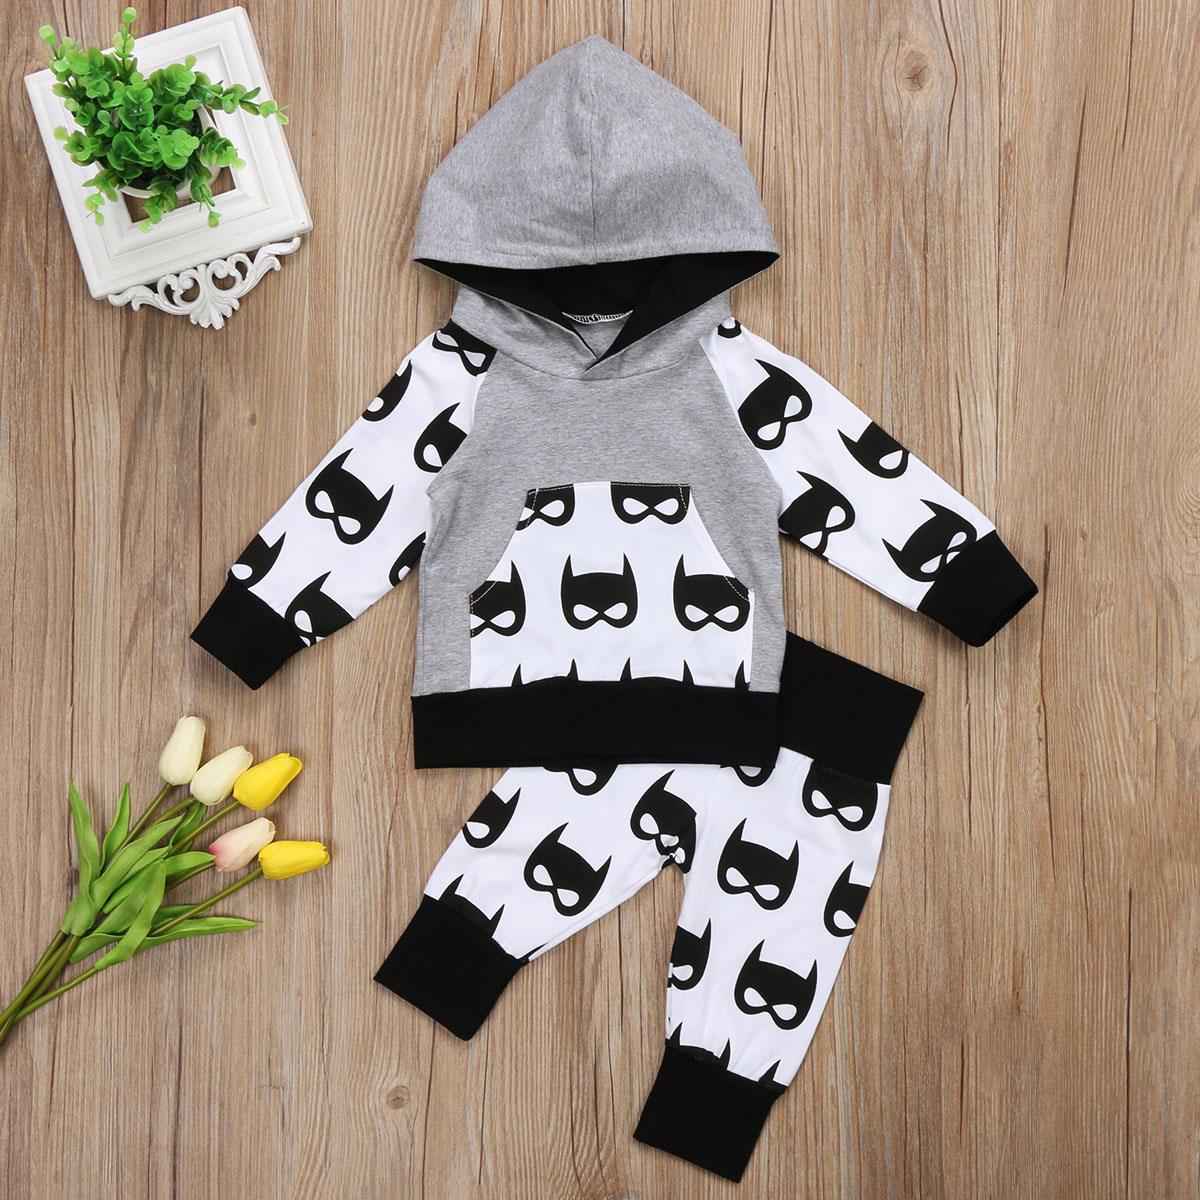 Pudcoco Toddler Baby Boys Clothes Set  0-5Y Cartoon Hooded Sweatshirts Tops  Pants Outfits Autumn Clothes